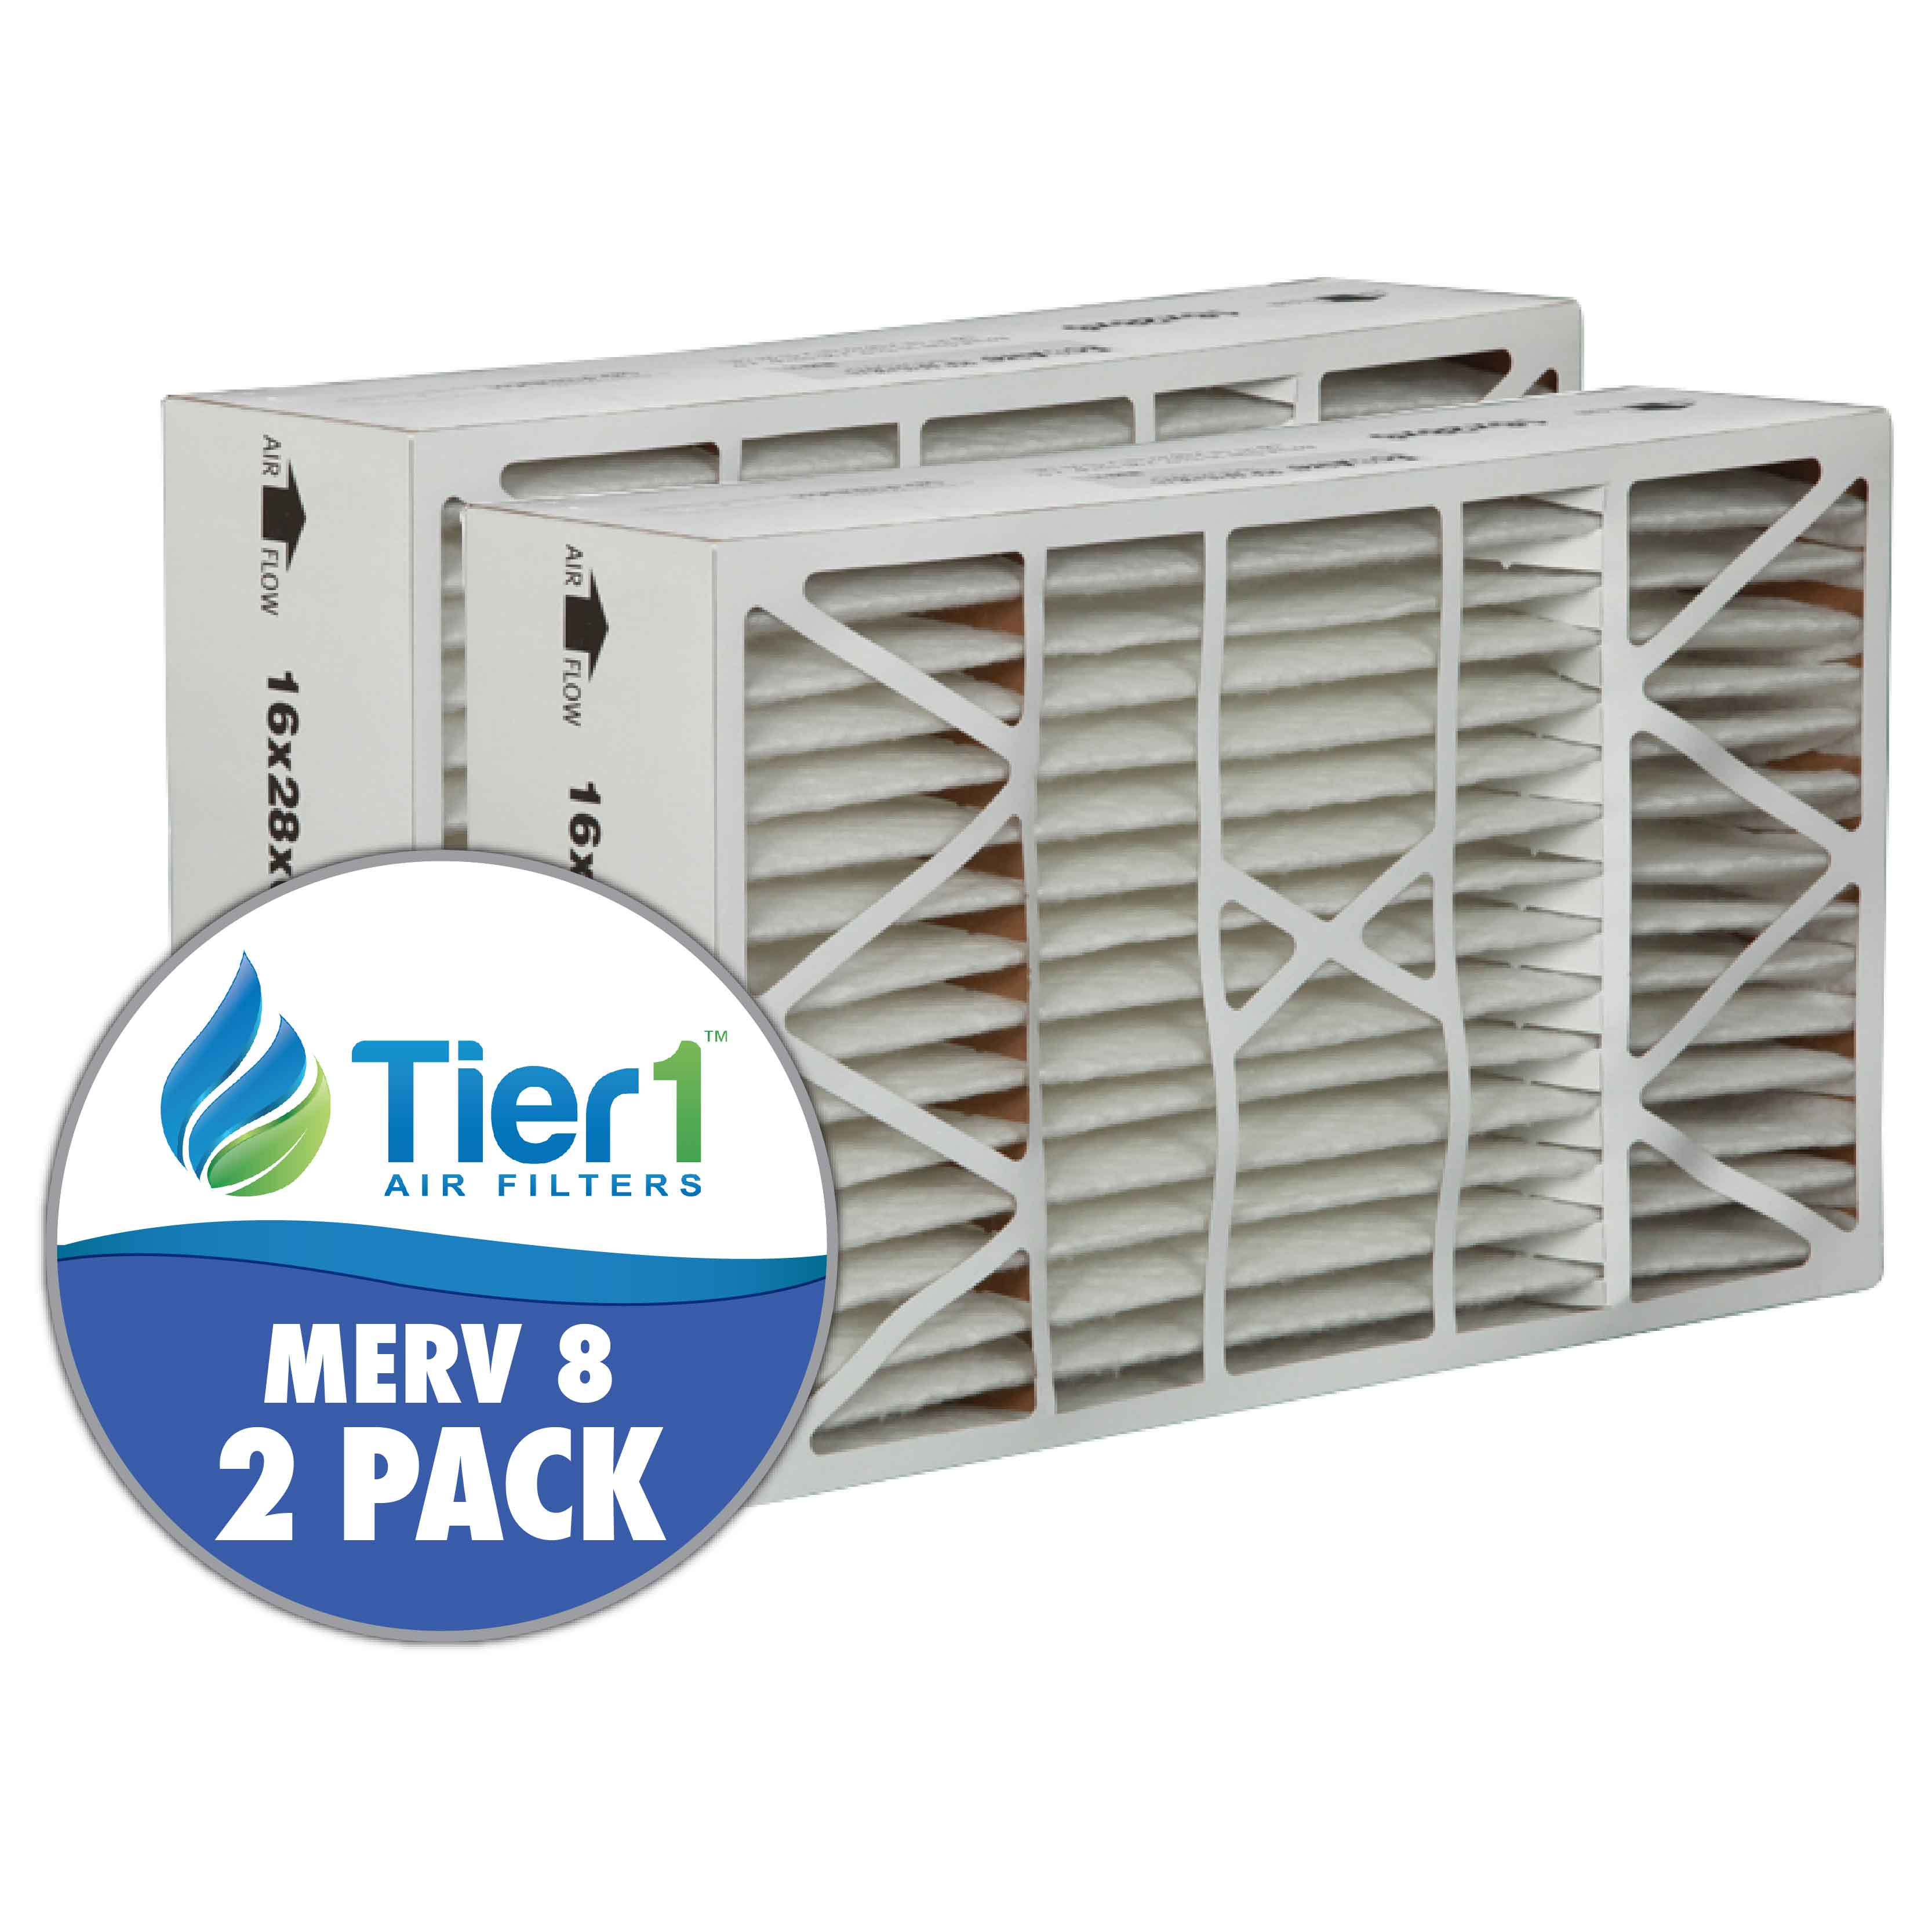 Tier1 brand replacement for Aprilaire #401 - 16 x 28 x 6 - MERV 8 (2-Pack) TIER1-DPFS16X28X6